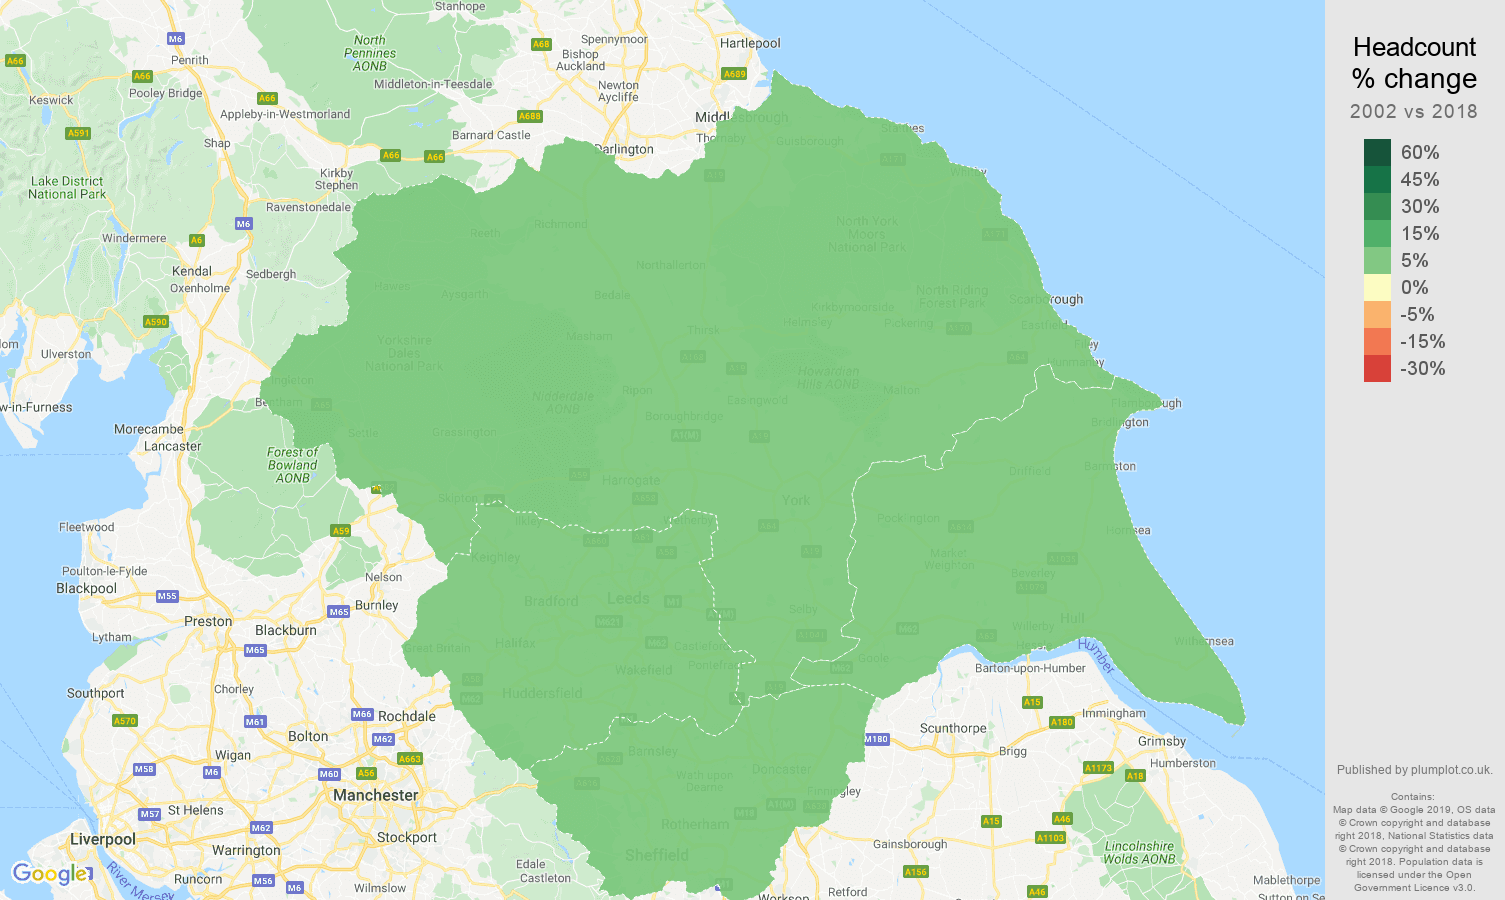 Yorkshire headcount change map